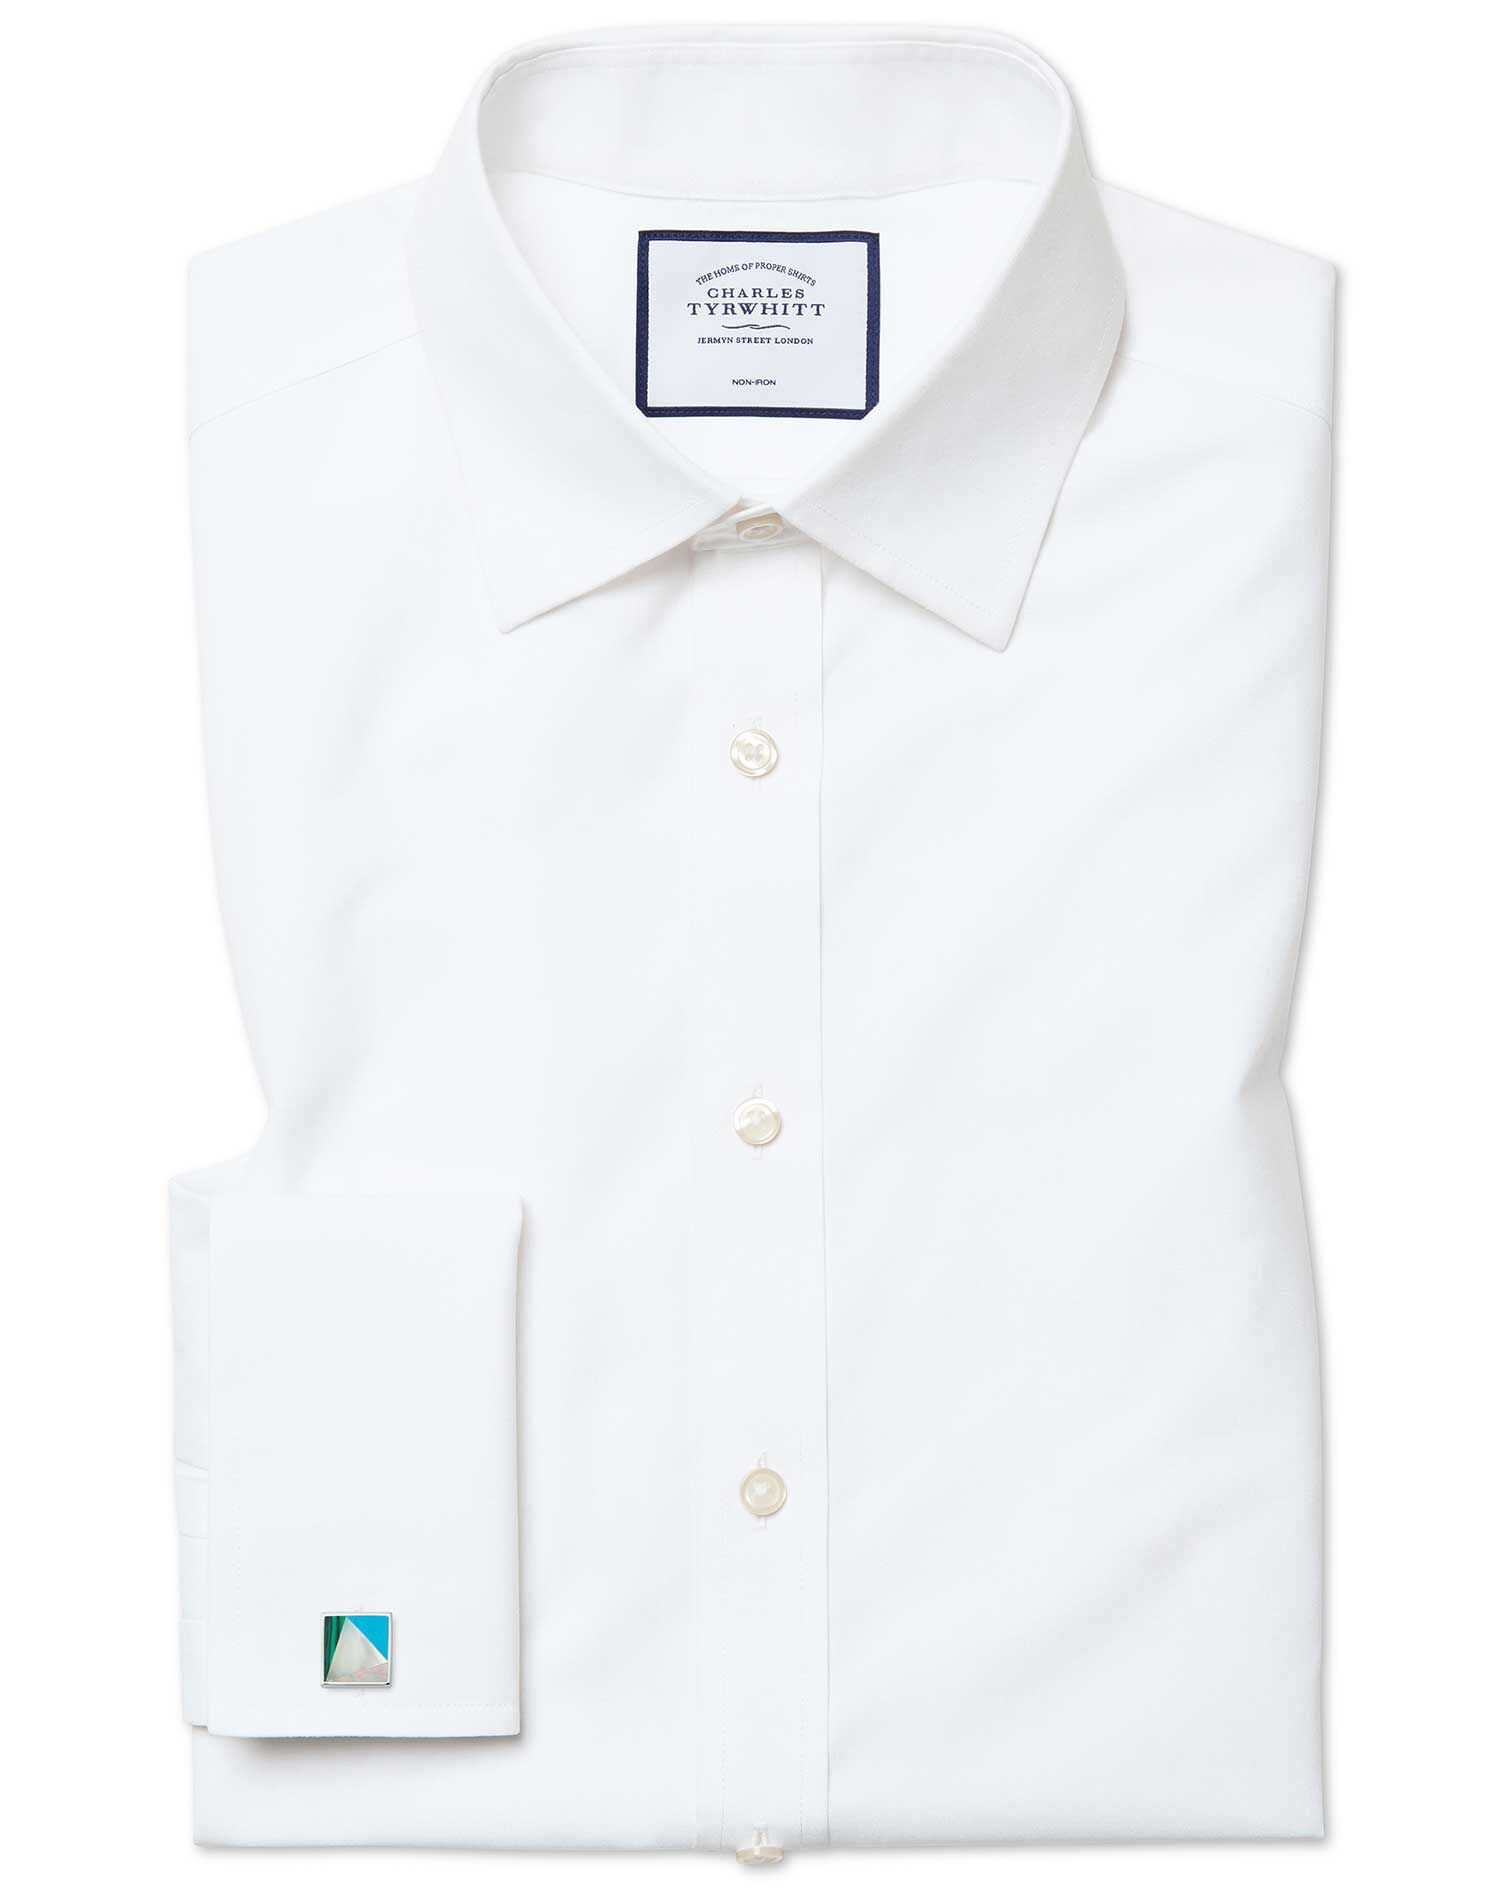 Classic Fit Non-Iron Poplin White Cotton Formal Shirt Single Cuff Size 15.5/37 by Charles Tyrwhitt